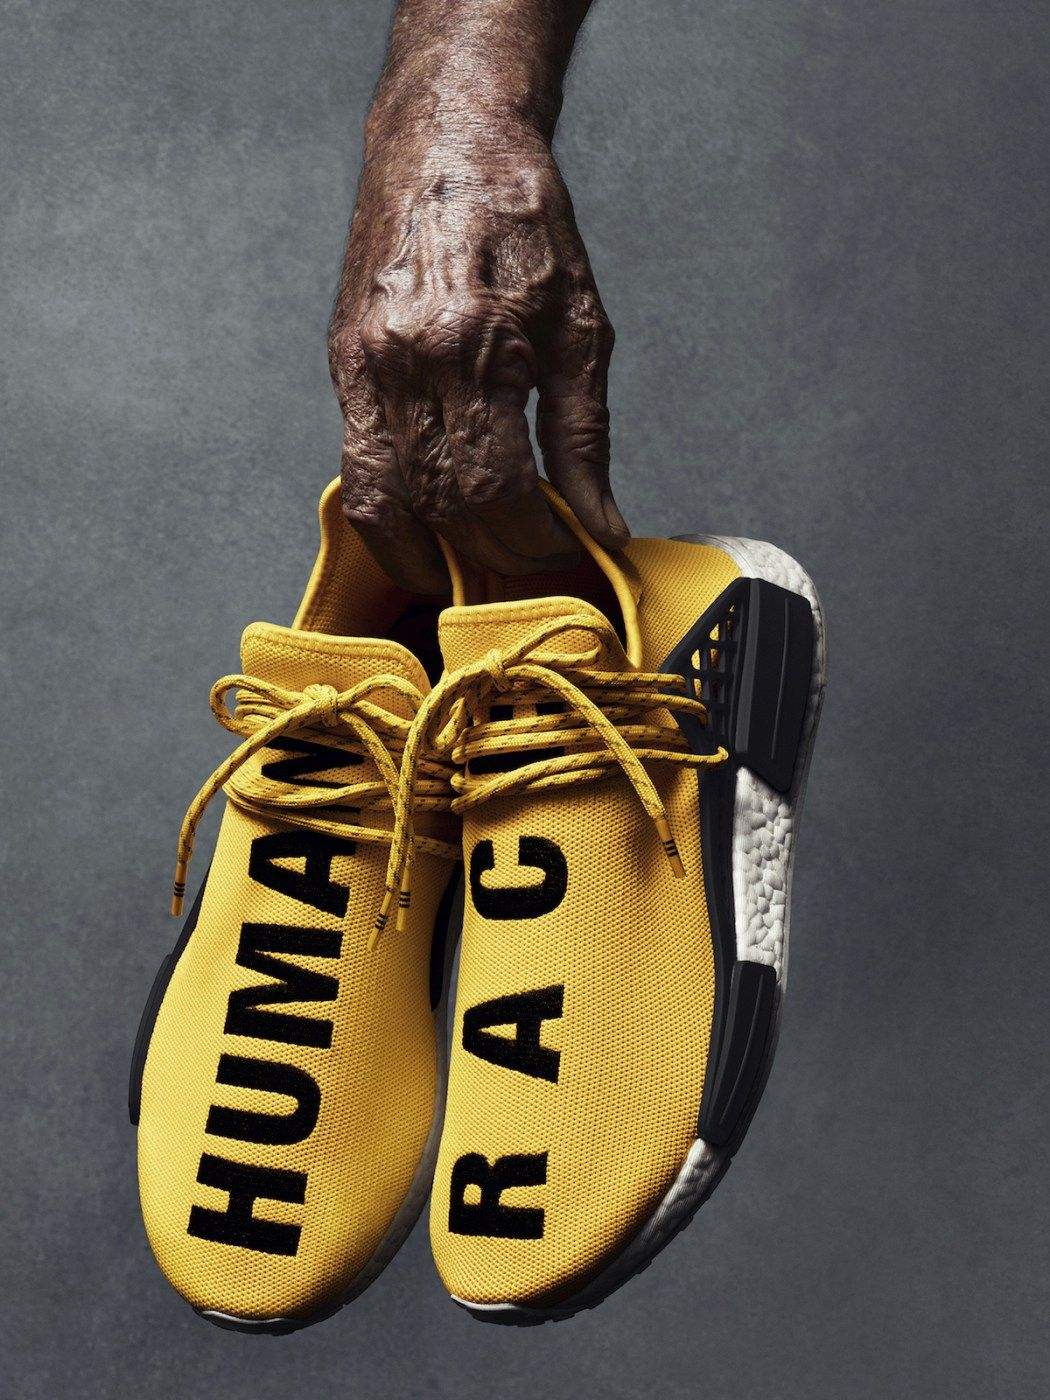 new style 63866 74957 ADIDAS ORIGINALS APRESENTA O PHARRELL WILLIAMS HU NMD